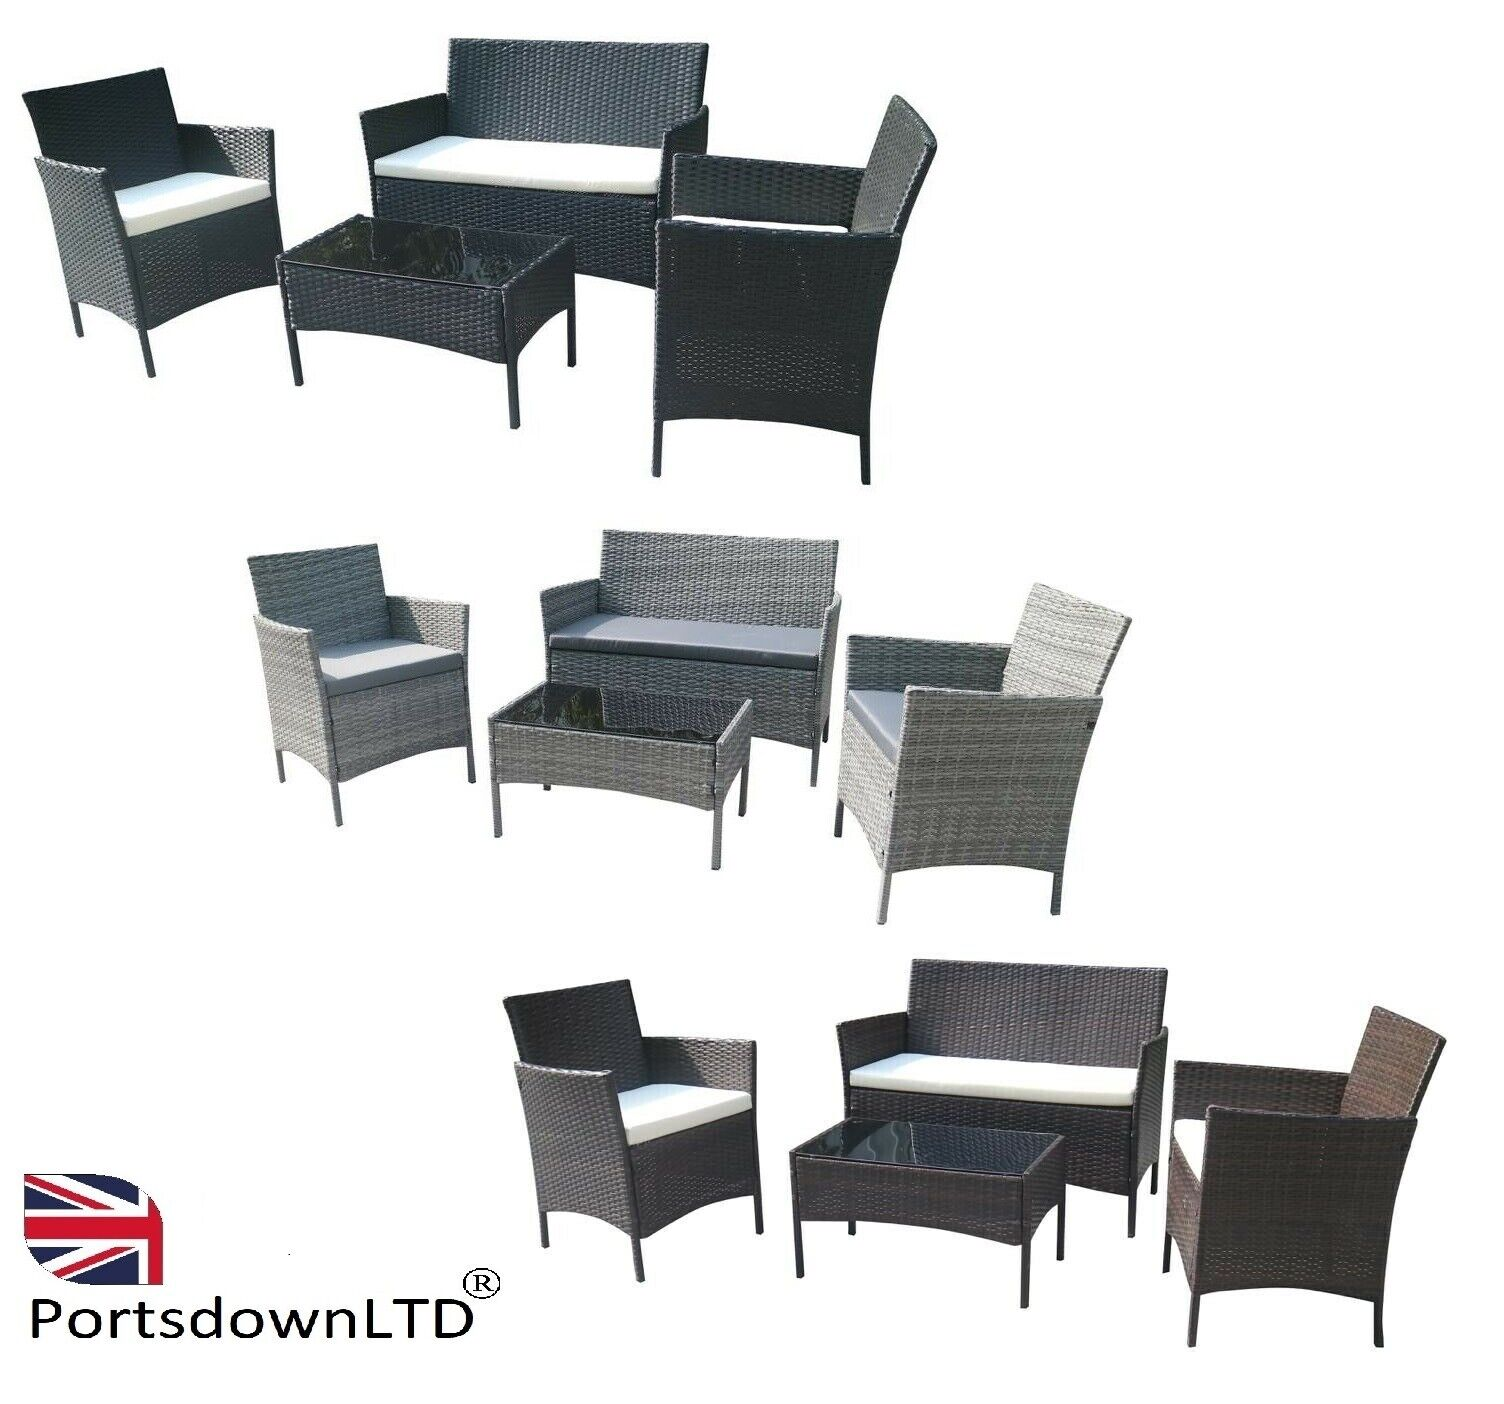 Garden Furniture - 4 Pcs Rattan Garden Furniture Set - Outdoor Sofa 2 x Arm Chairs Coffee Table UK